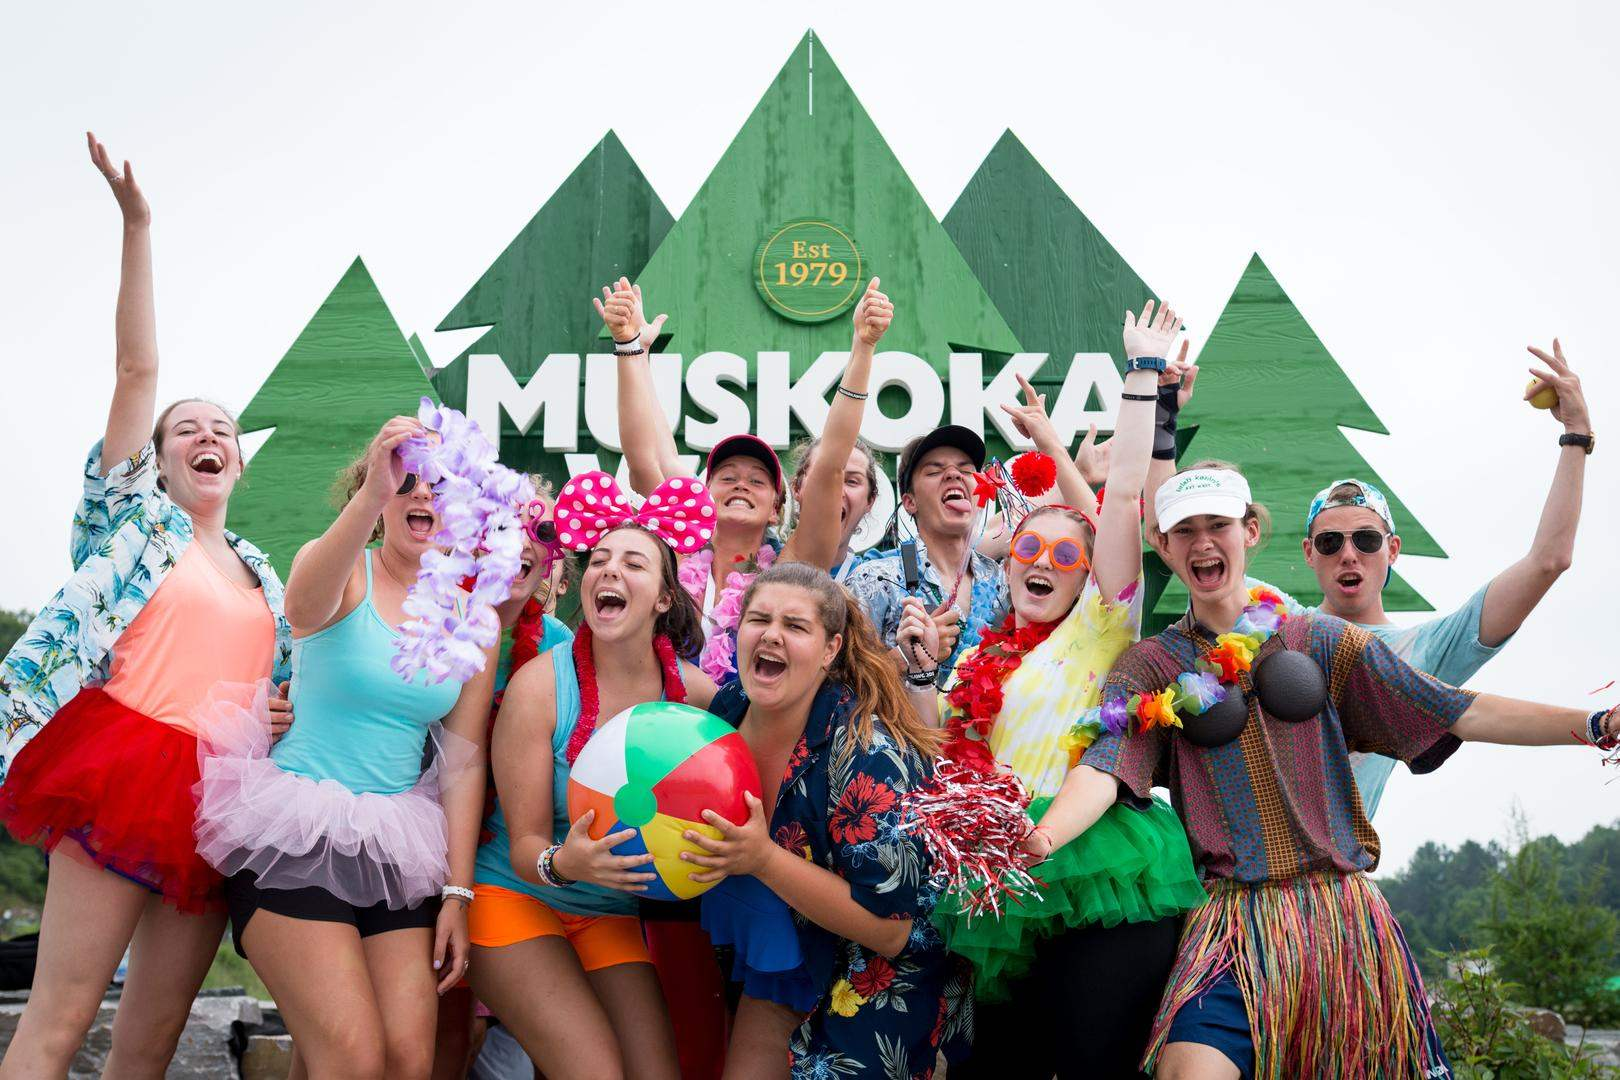 Teenagers dressed in bright colours in front of the Muskoka Woods sign